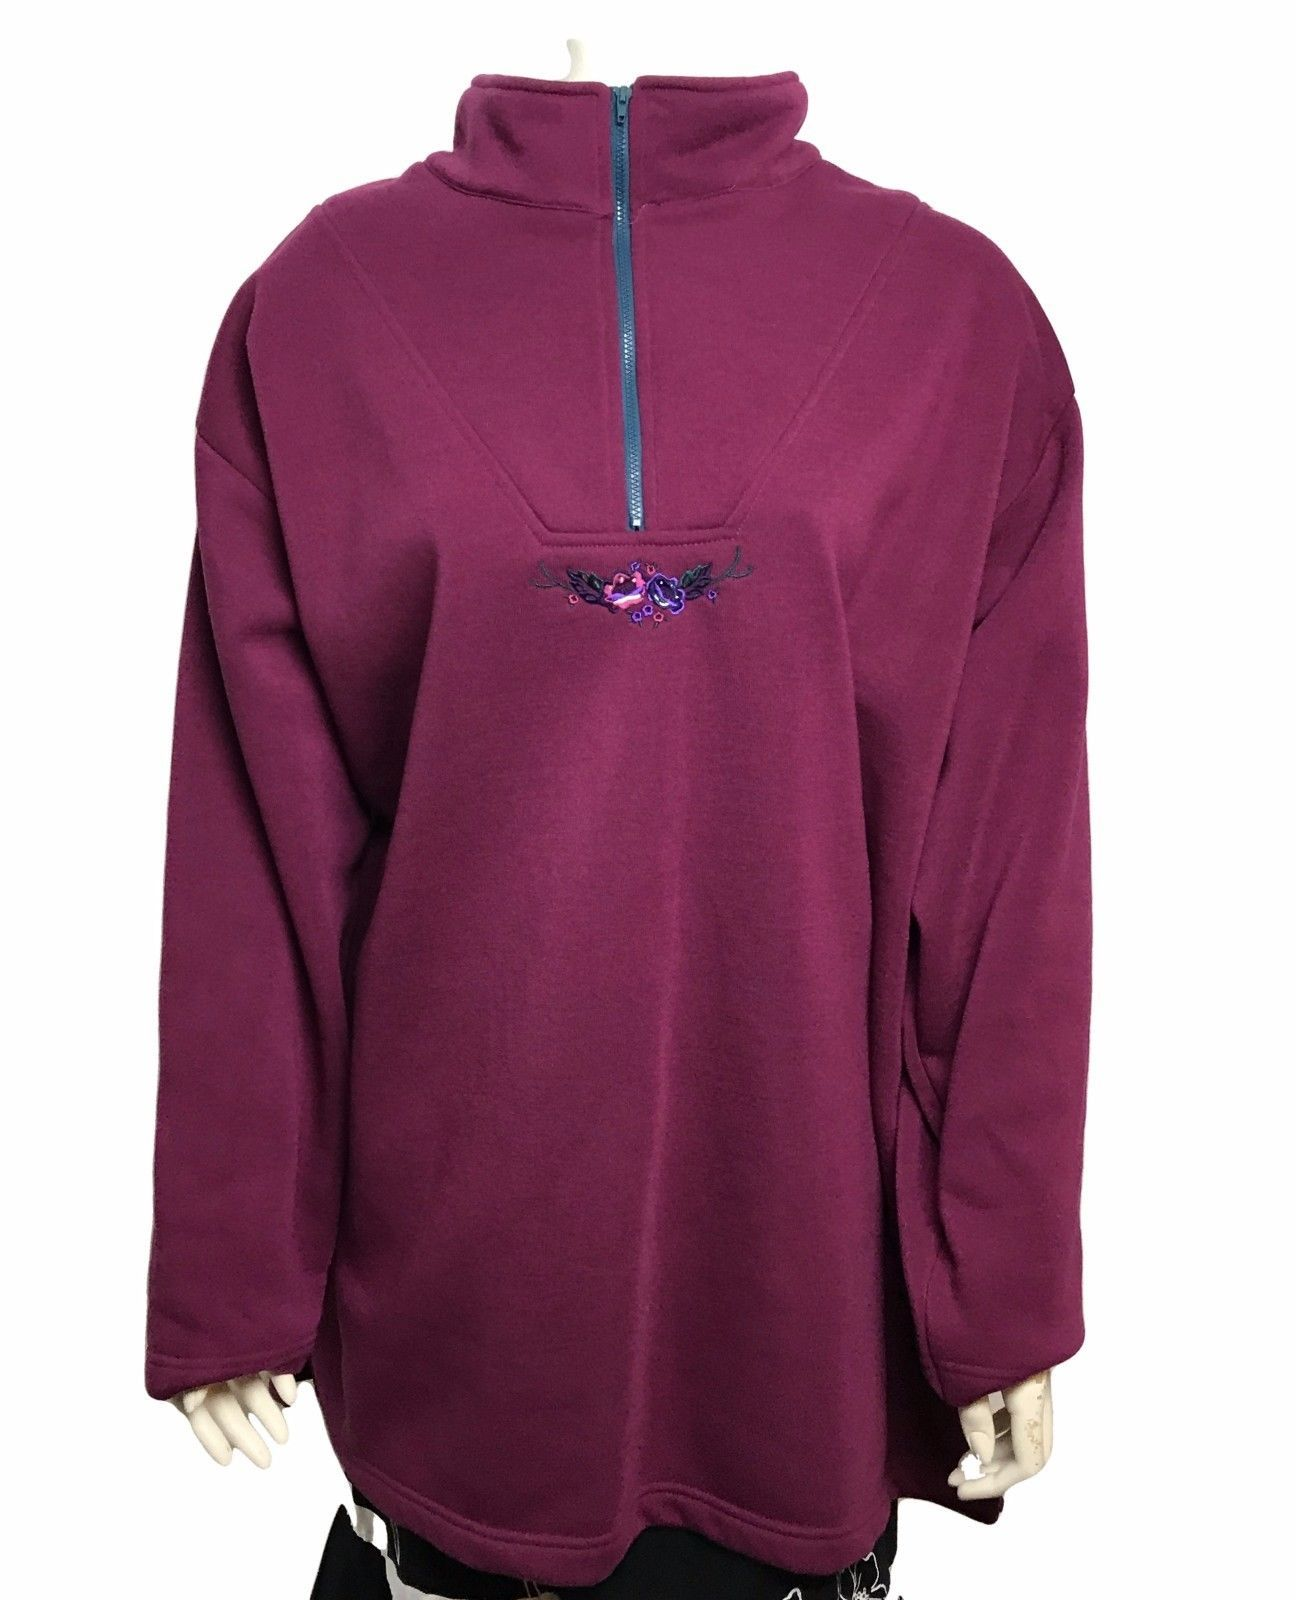 Primary image for Roamans Womens Plus Size Burgundy Floral Accent Half Zip Sweater Size 1X